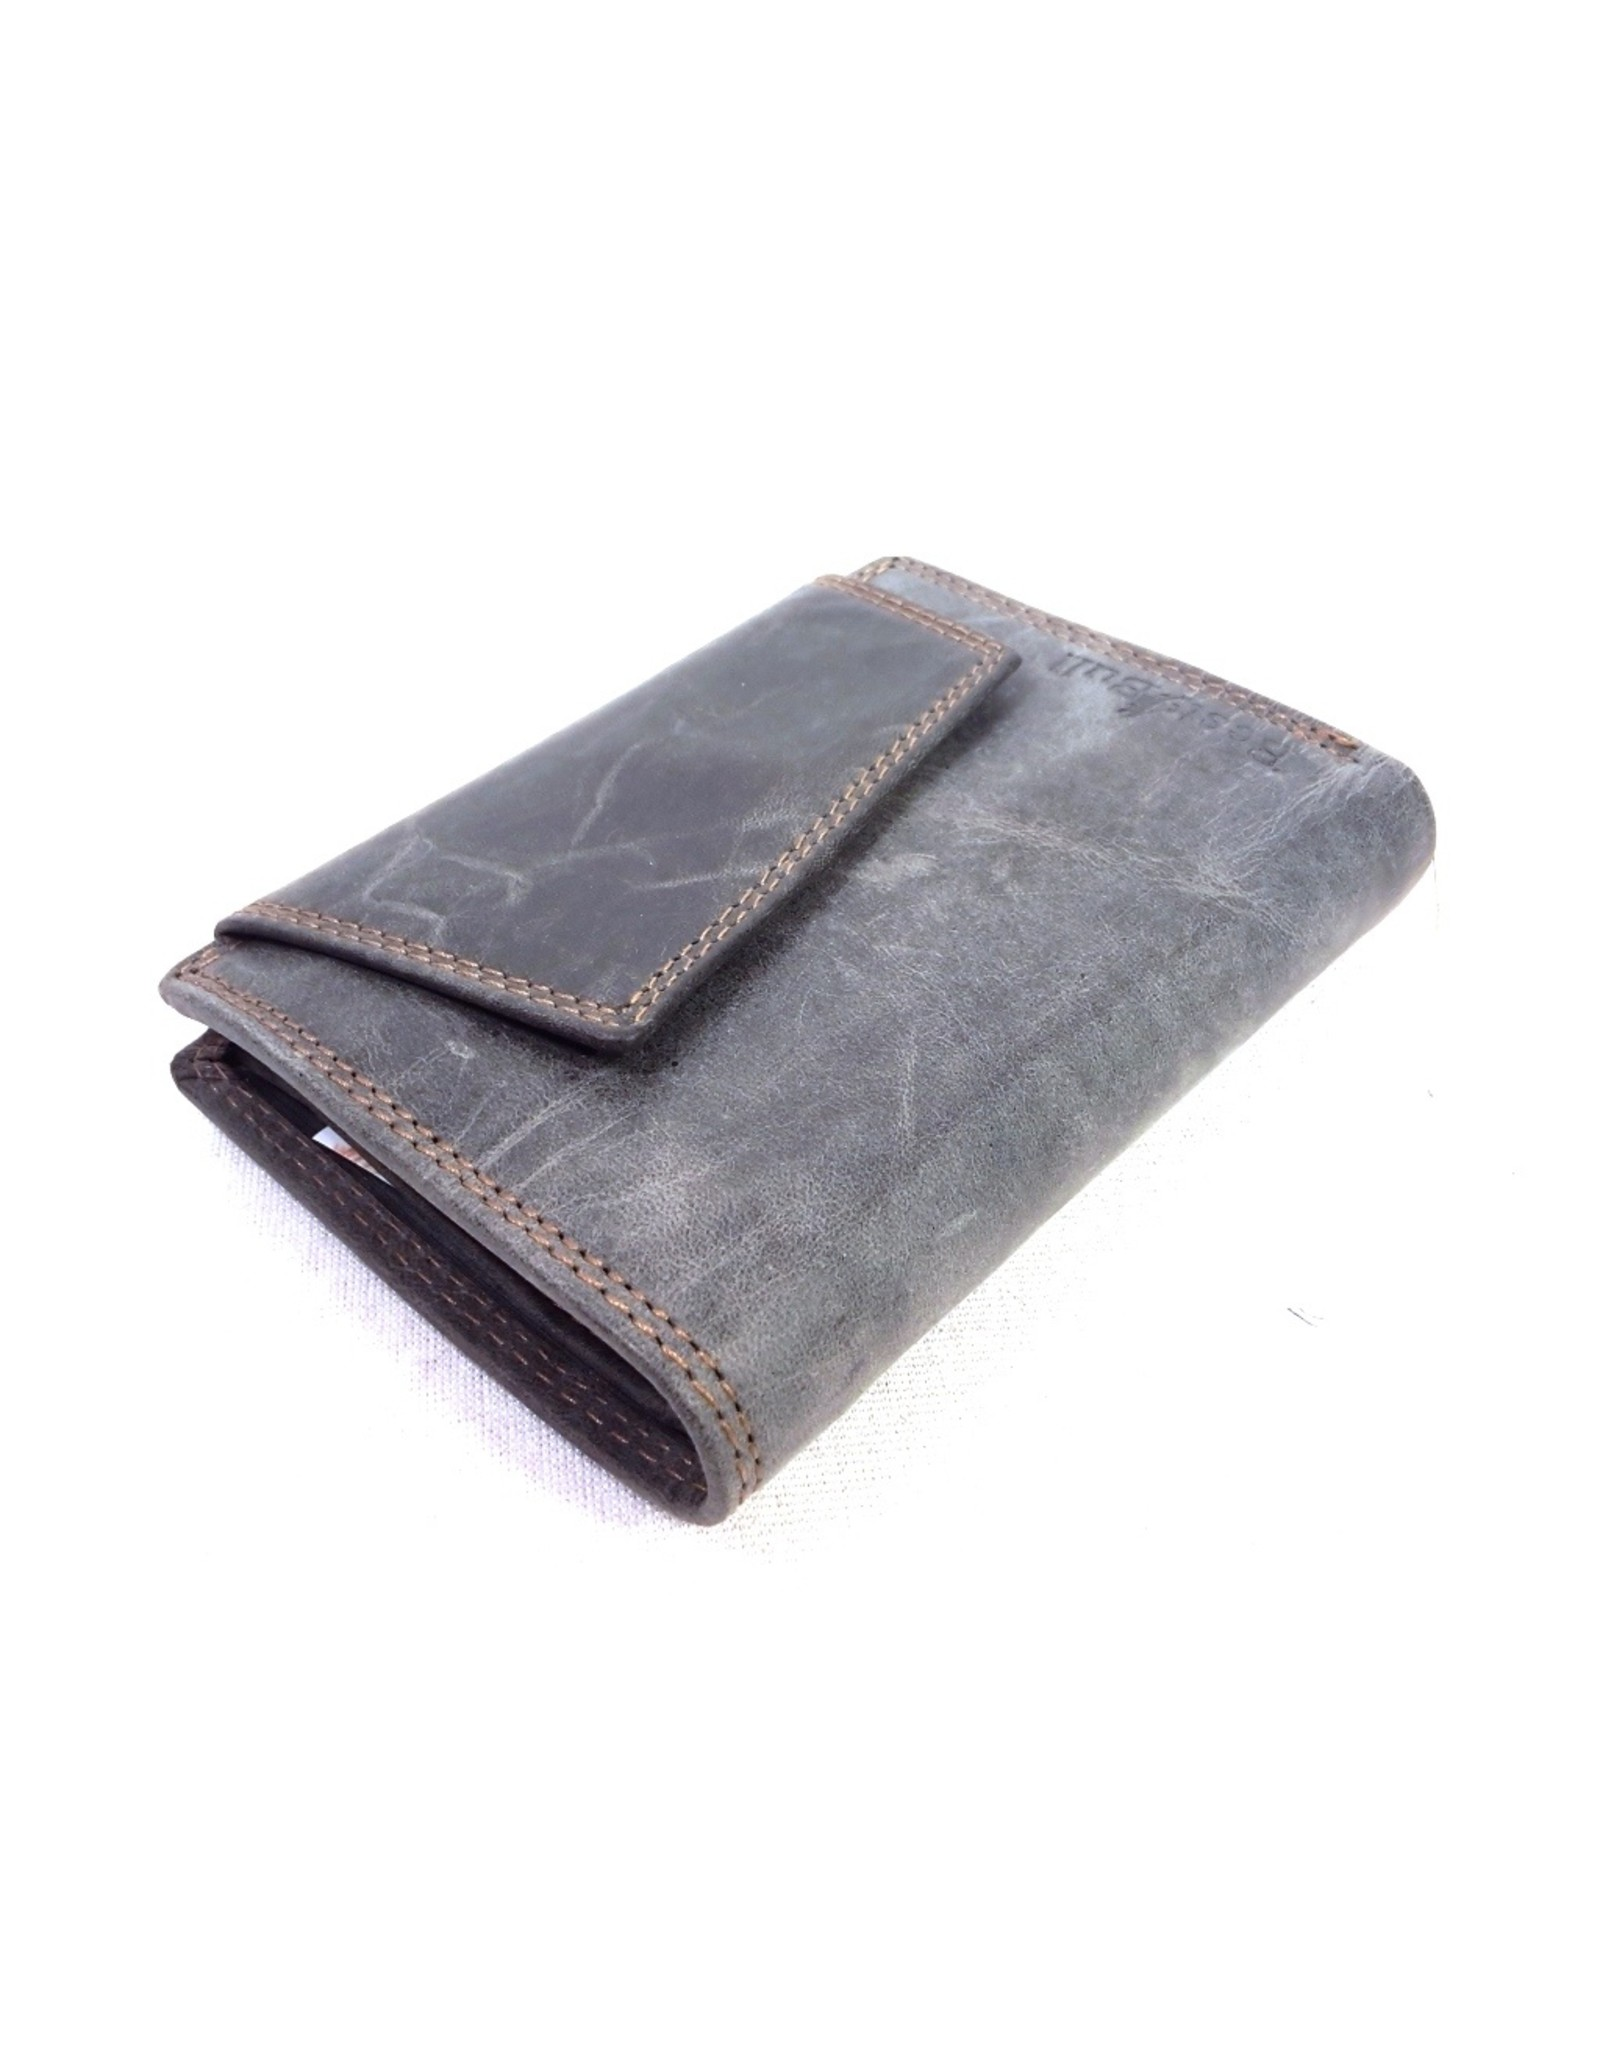 BestBull Leather Wallets -   Leather wallet with slanted cover grey